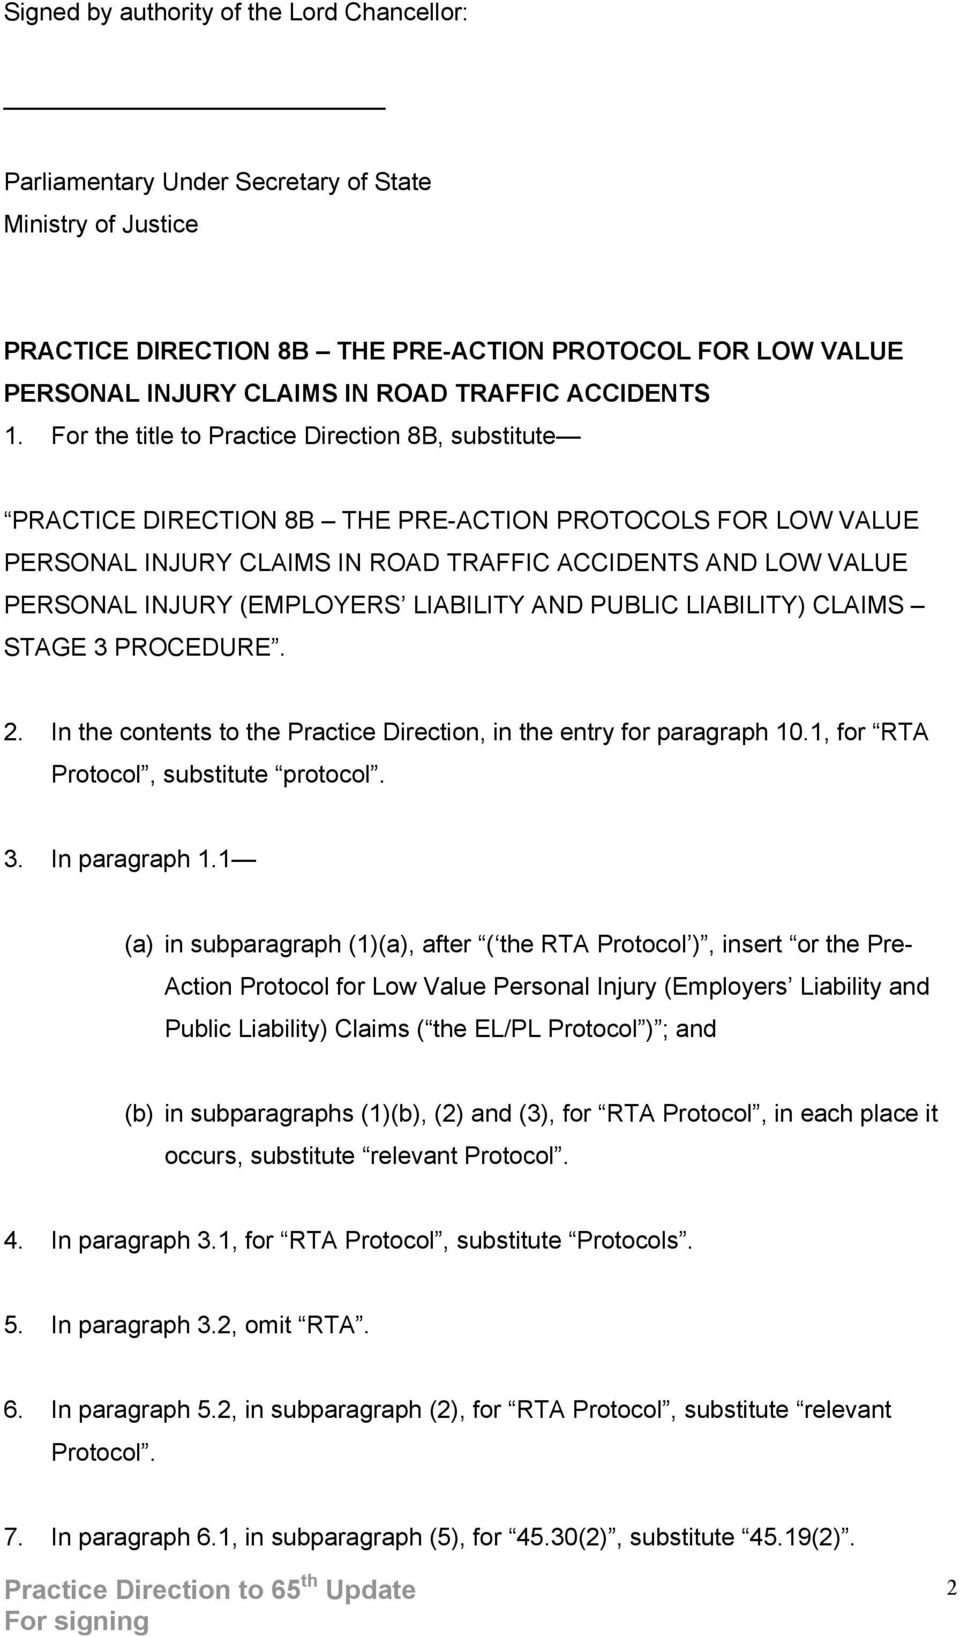 For the title to Practice Direction 8B, substitute PRACTICE DIRECTION 8B THE PRE-ACTION PROTOCOLS FOR LOW VALUE PERSONAL INJURY CLAIMS IN ROAD TRAFFIC ACCIDENTS AND LOW VALUE PERSONAL INJURY